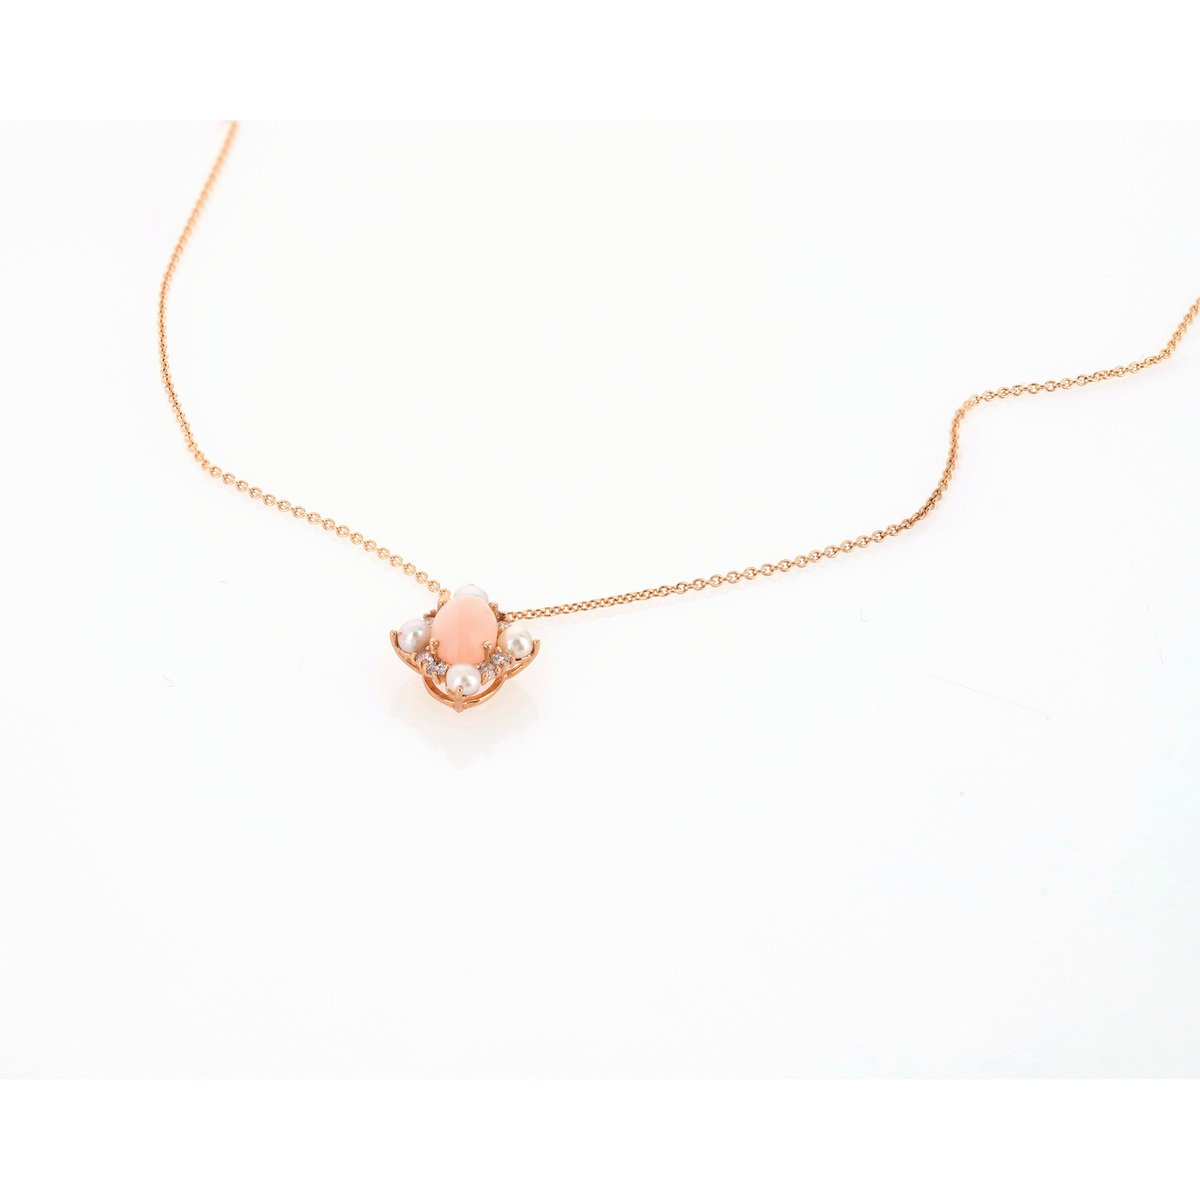 Collier or 375 rose opale zirconia et perle - vue V2